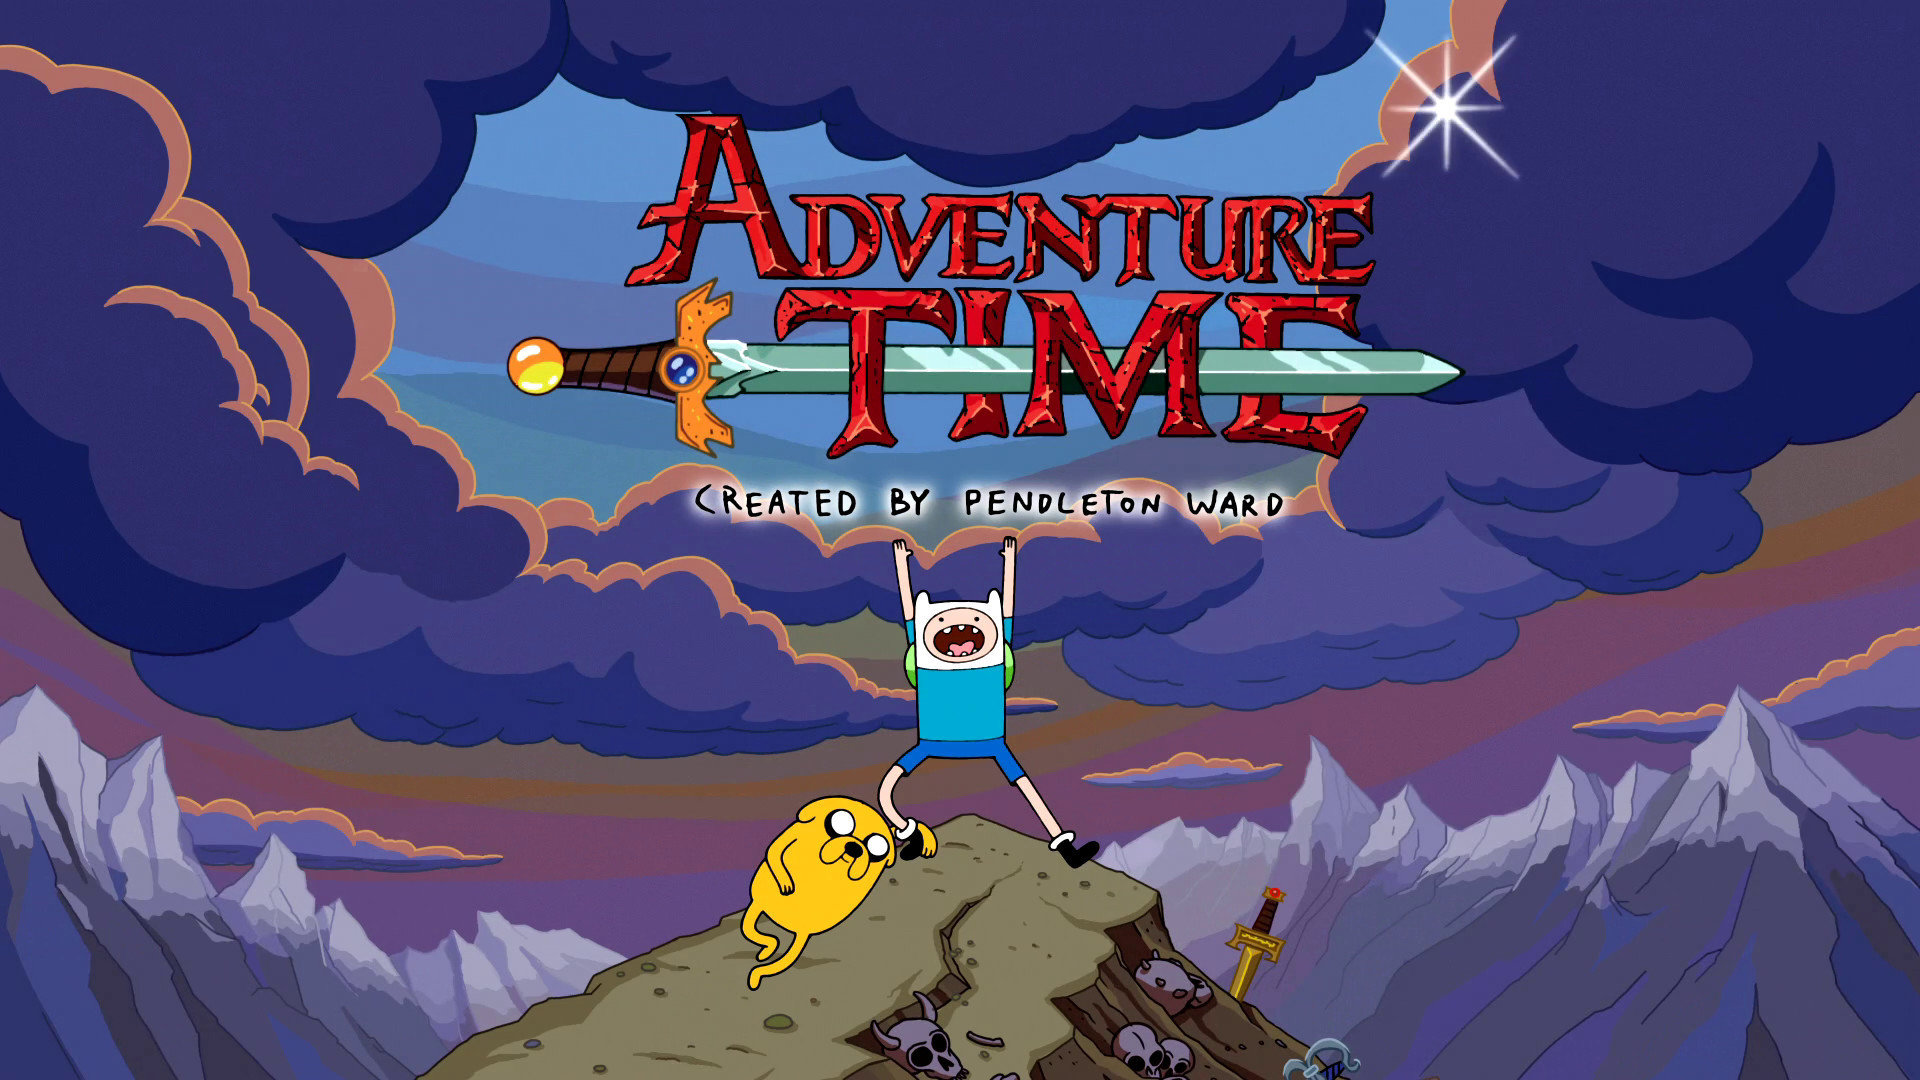 High Resolution Adventure Time Hd 1080p Wallpaper Id 333545 For Pc